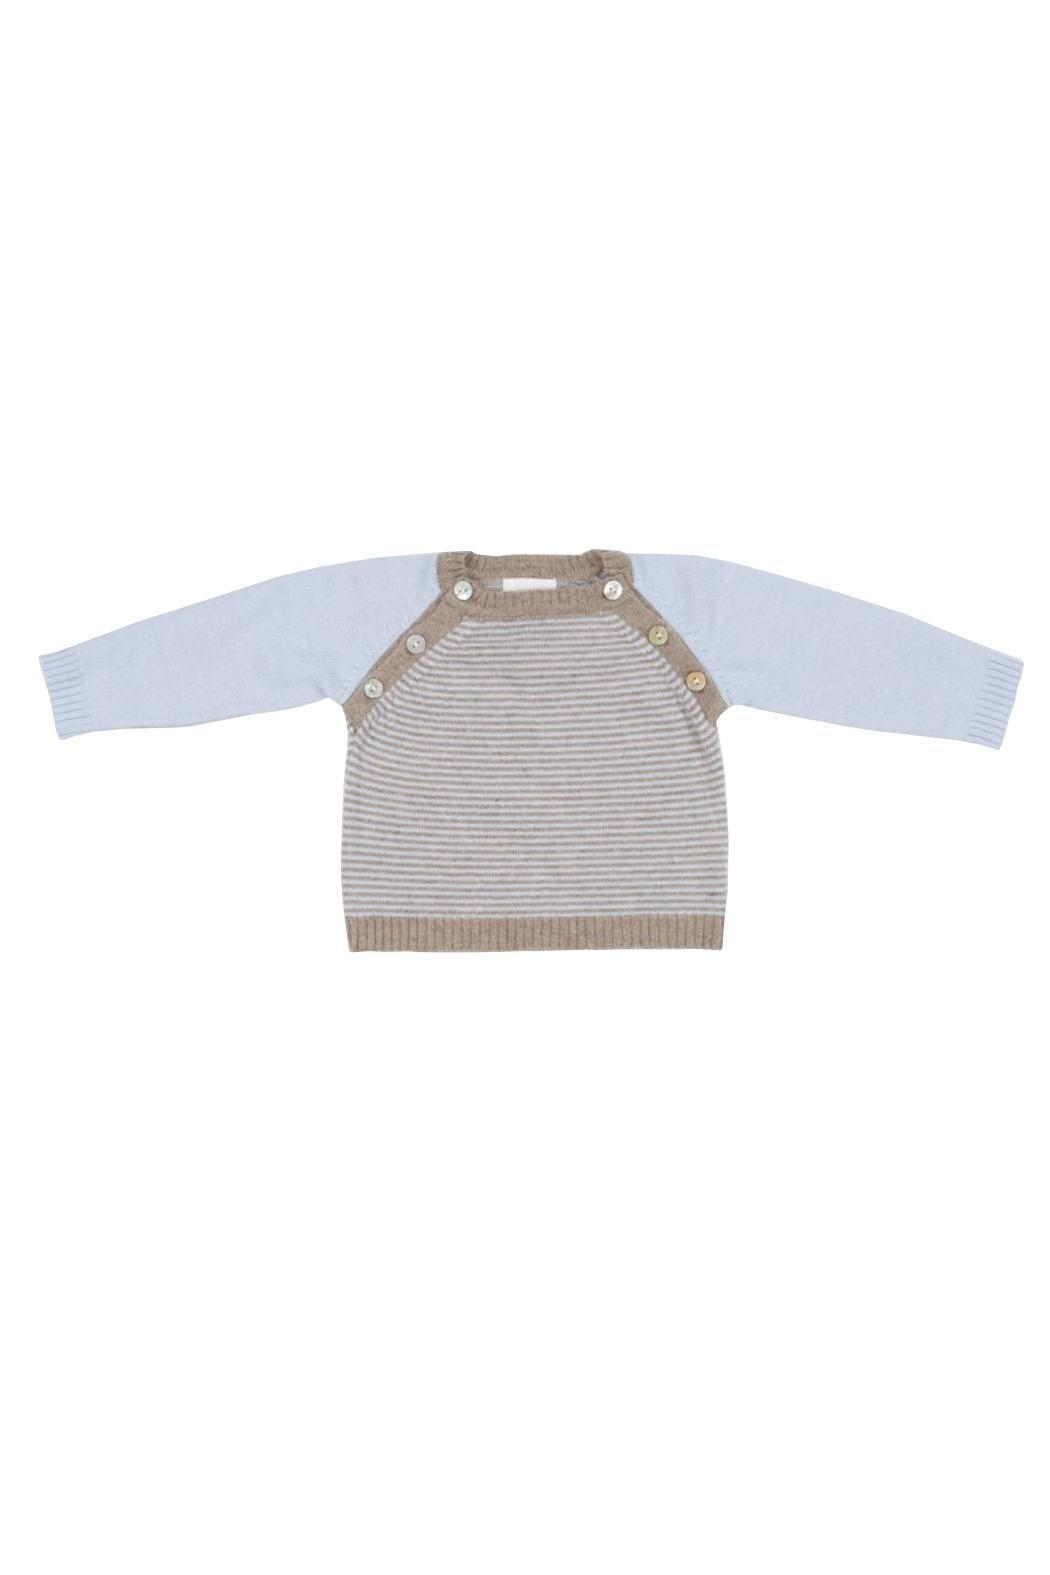 Malvi & Co. Beige Sweater. - Front Cropped Image